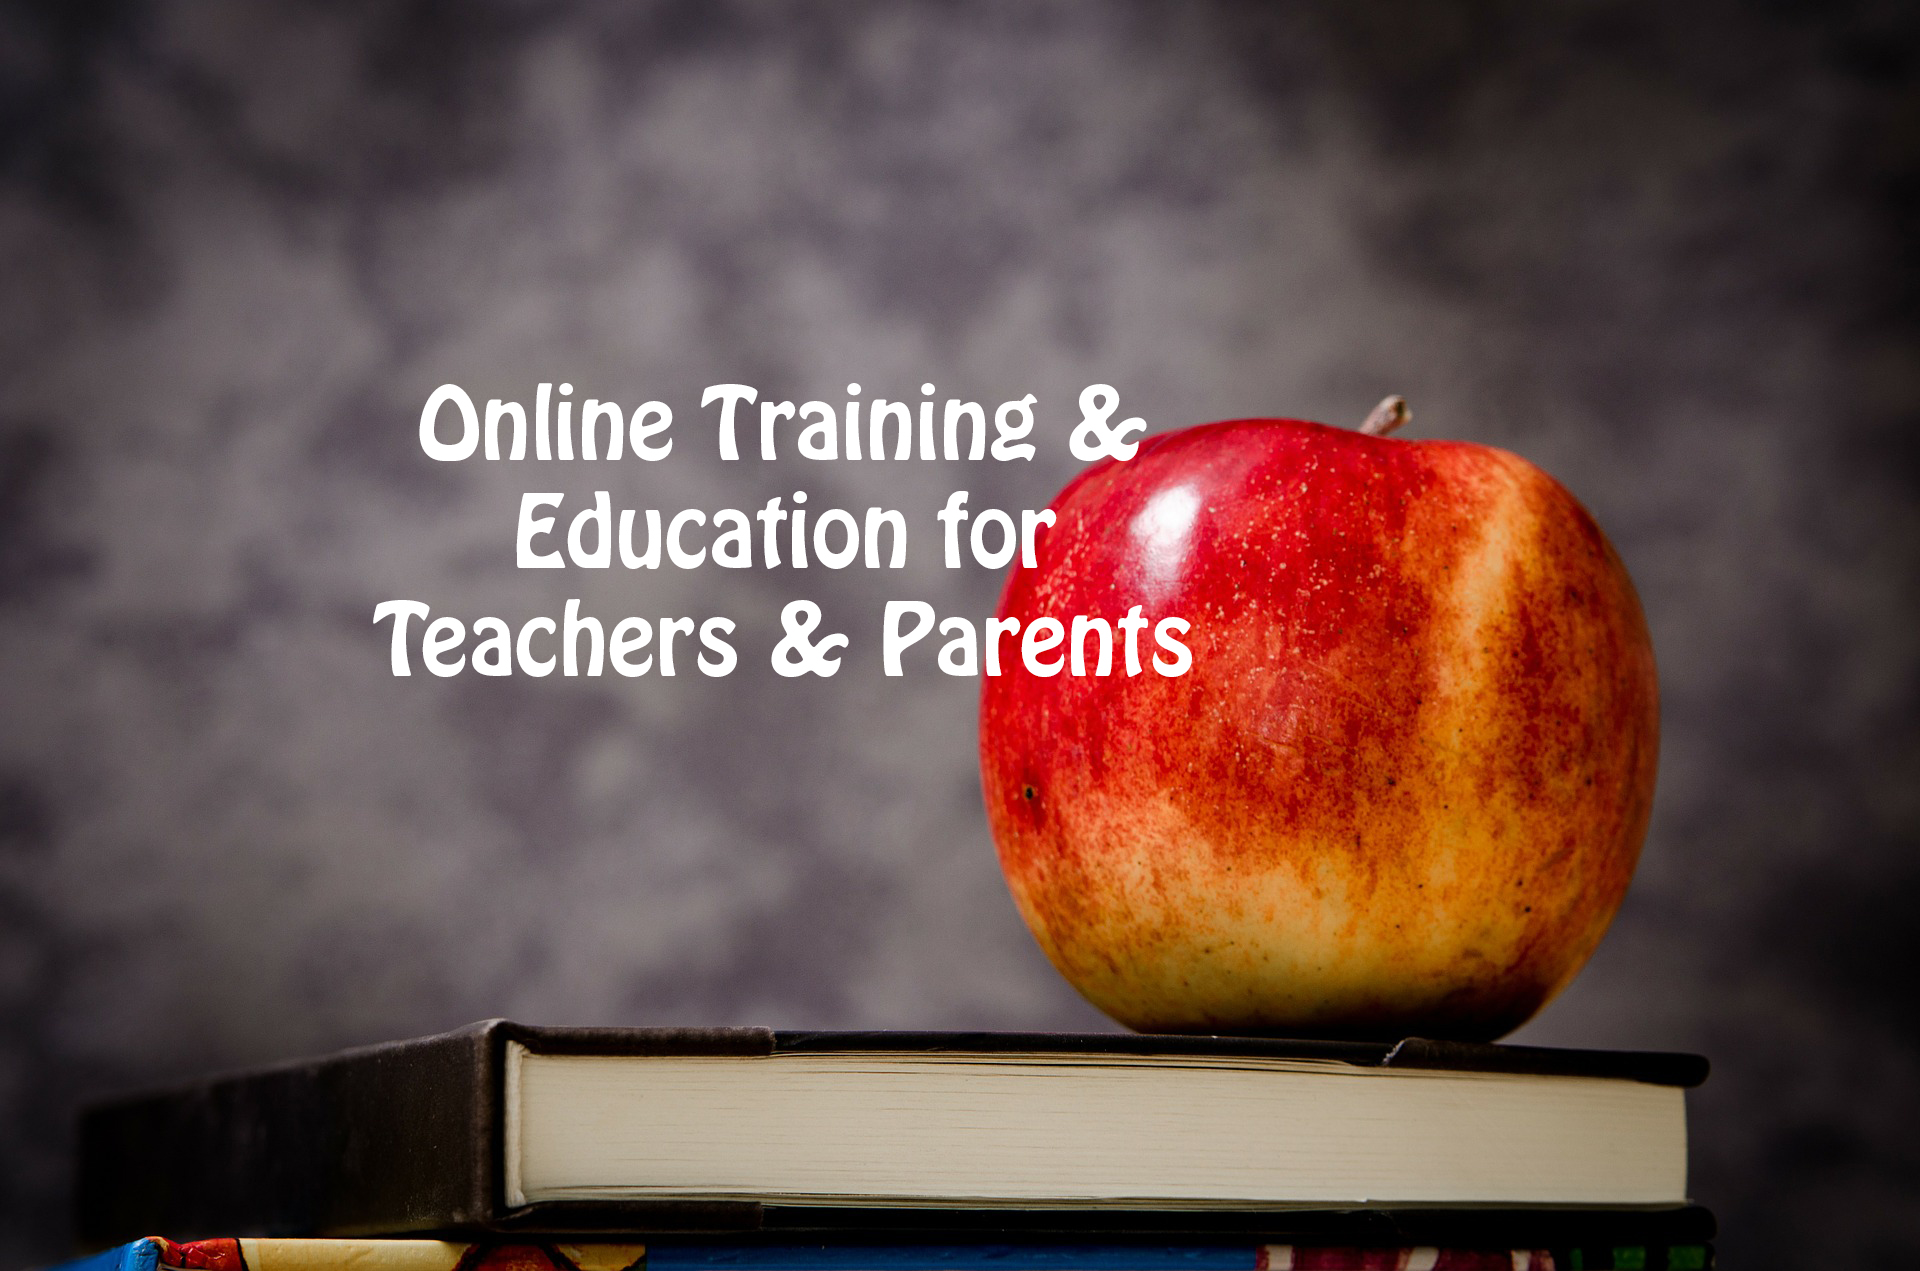 uploads/category/Online Training & Education for Teachers & Parents